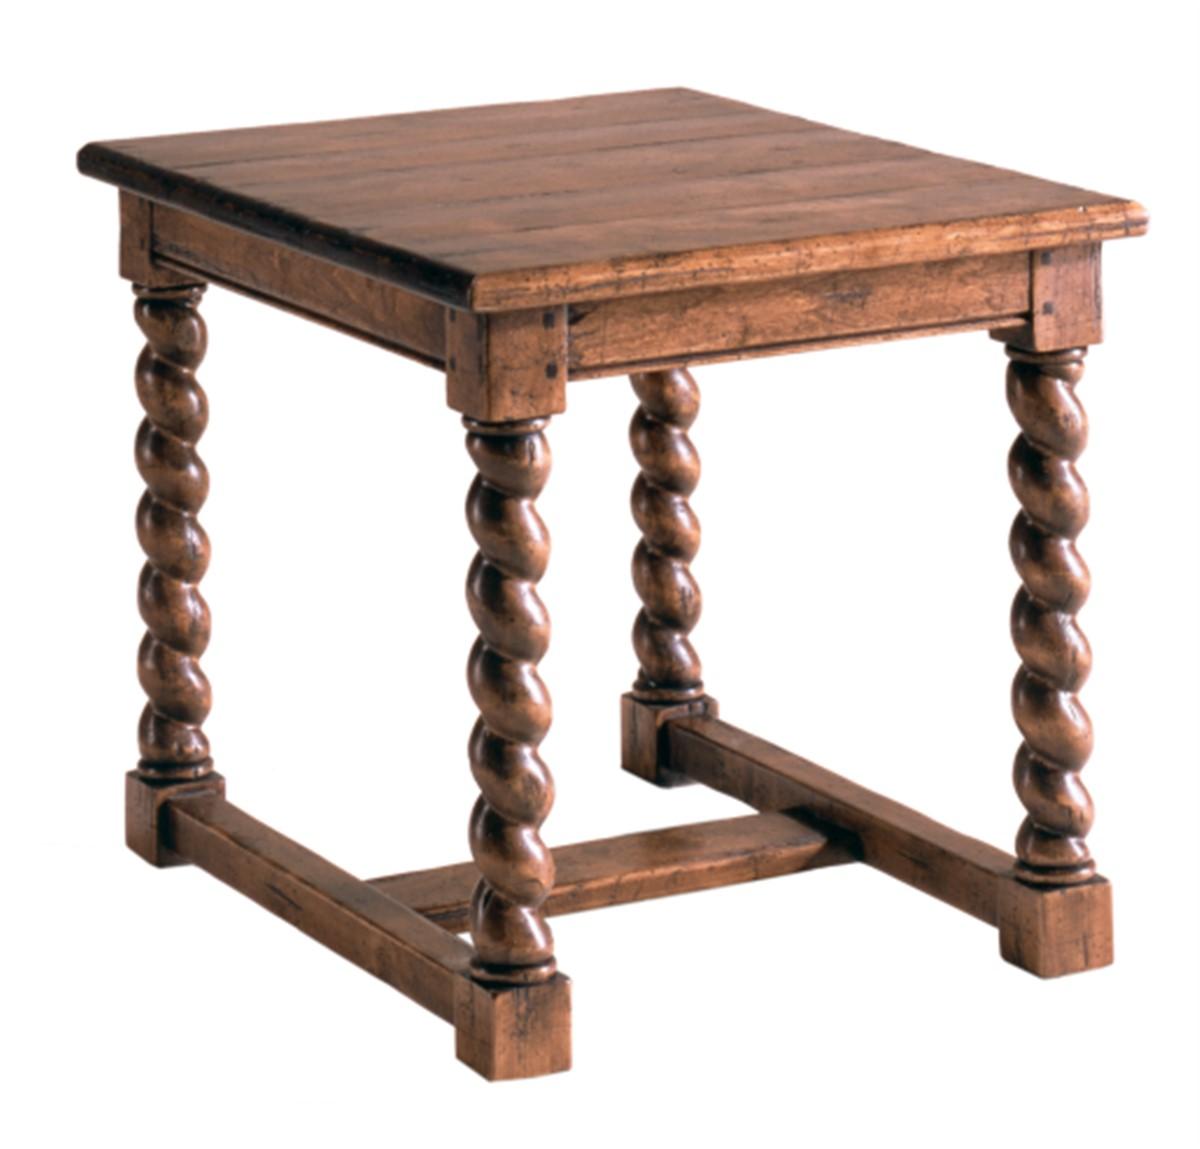 Country English Lamp Table